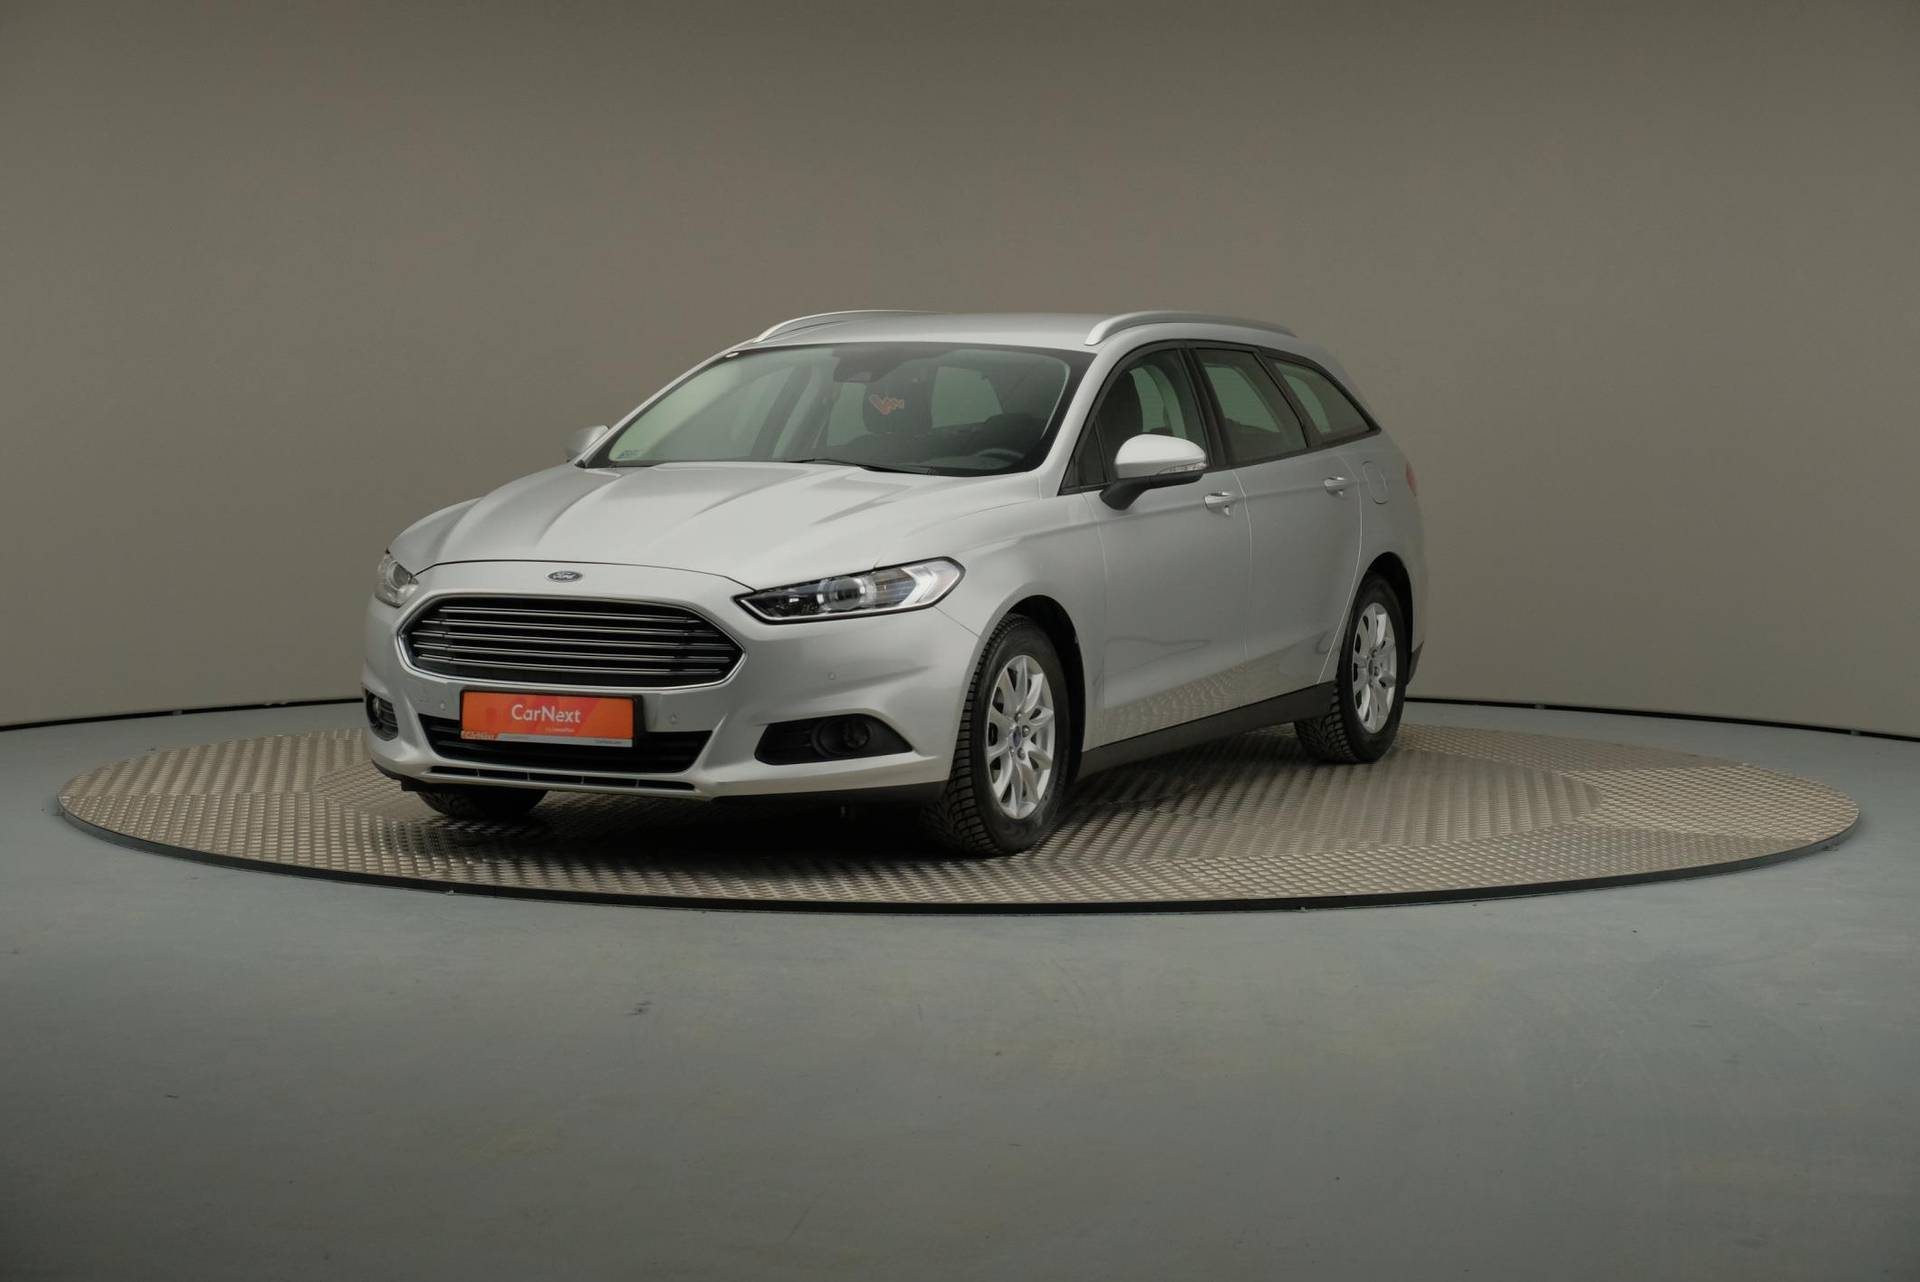 Ford Mondeo Turnier 1.5 Eco Boost Start-Stopp, Trend, 360-image34